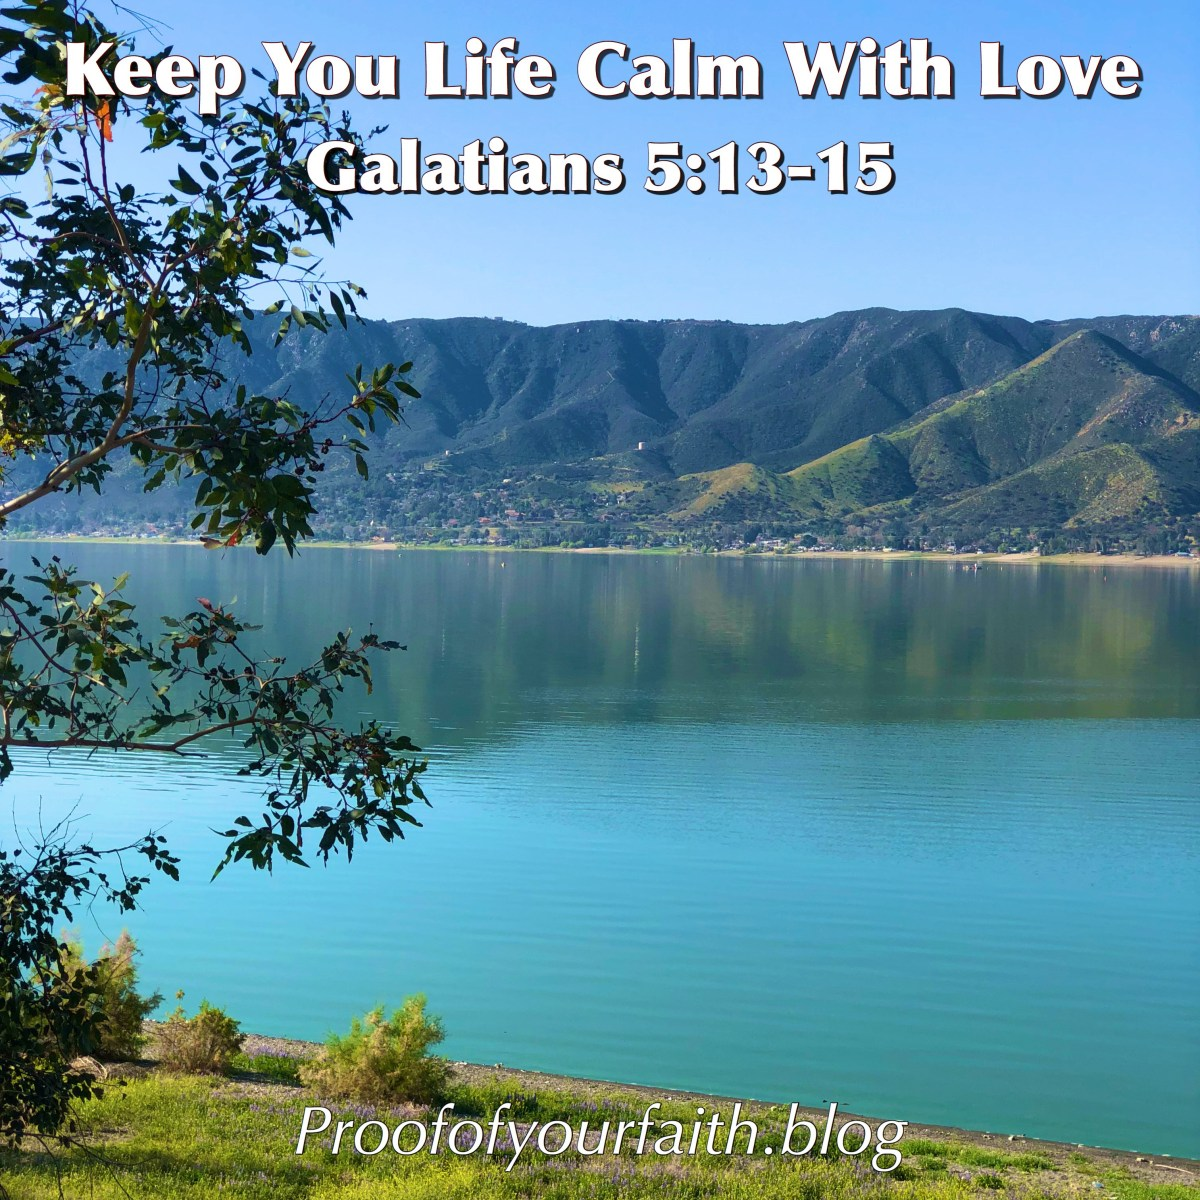 Keep Your Life Calm With Love